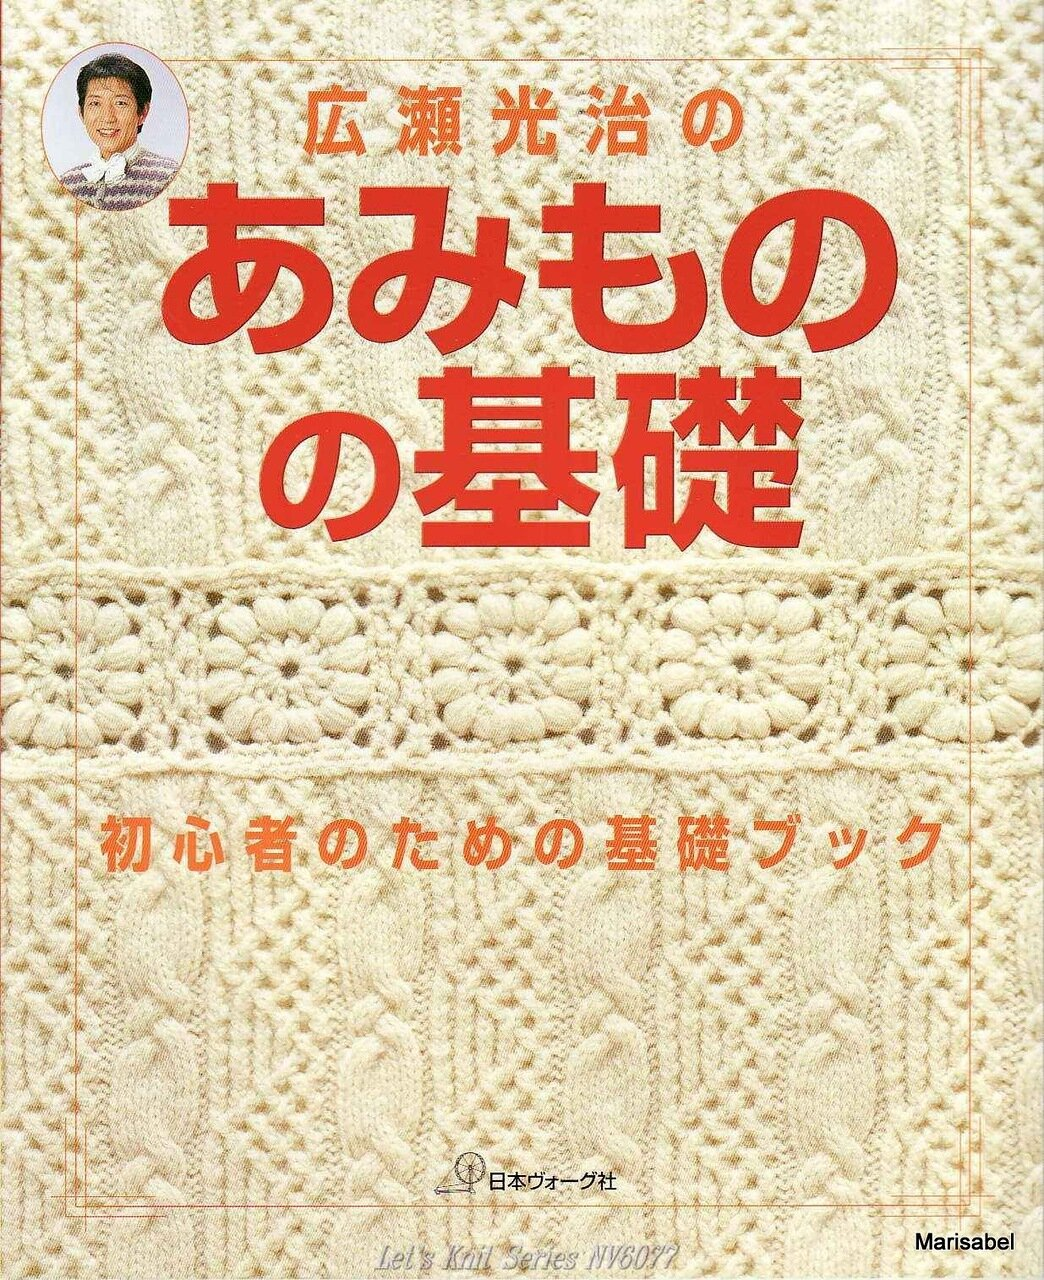 Lets Knit Series NV6077 2001